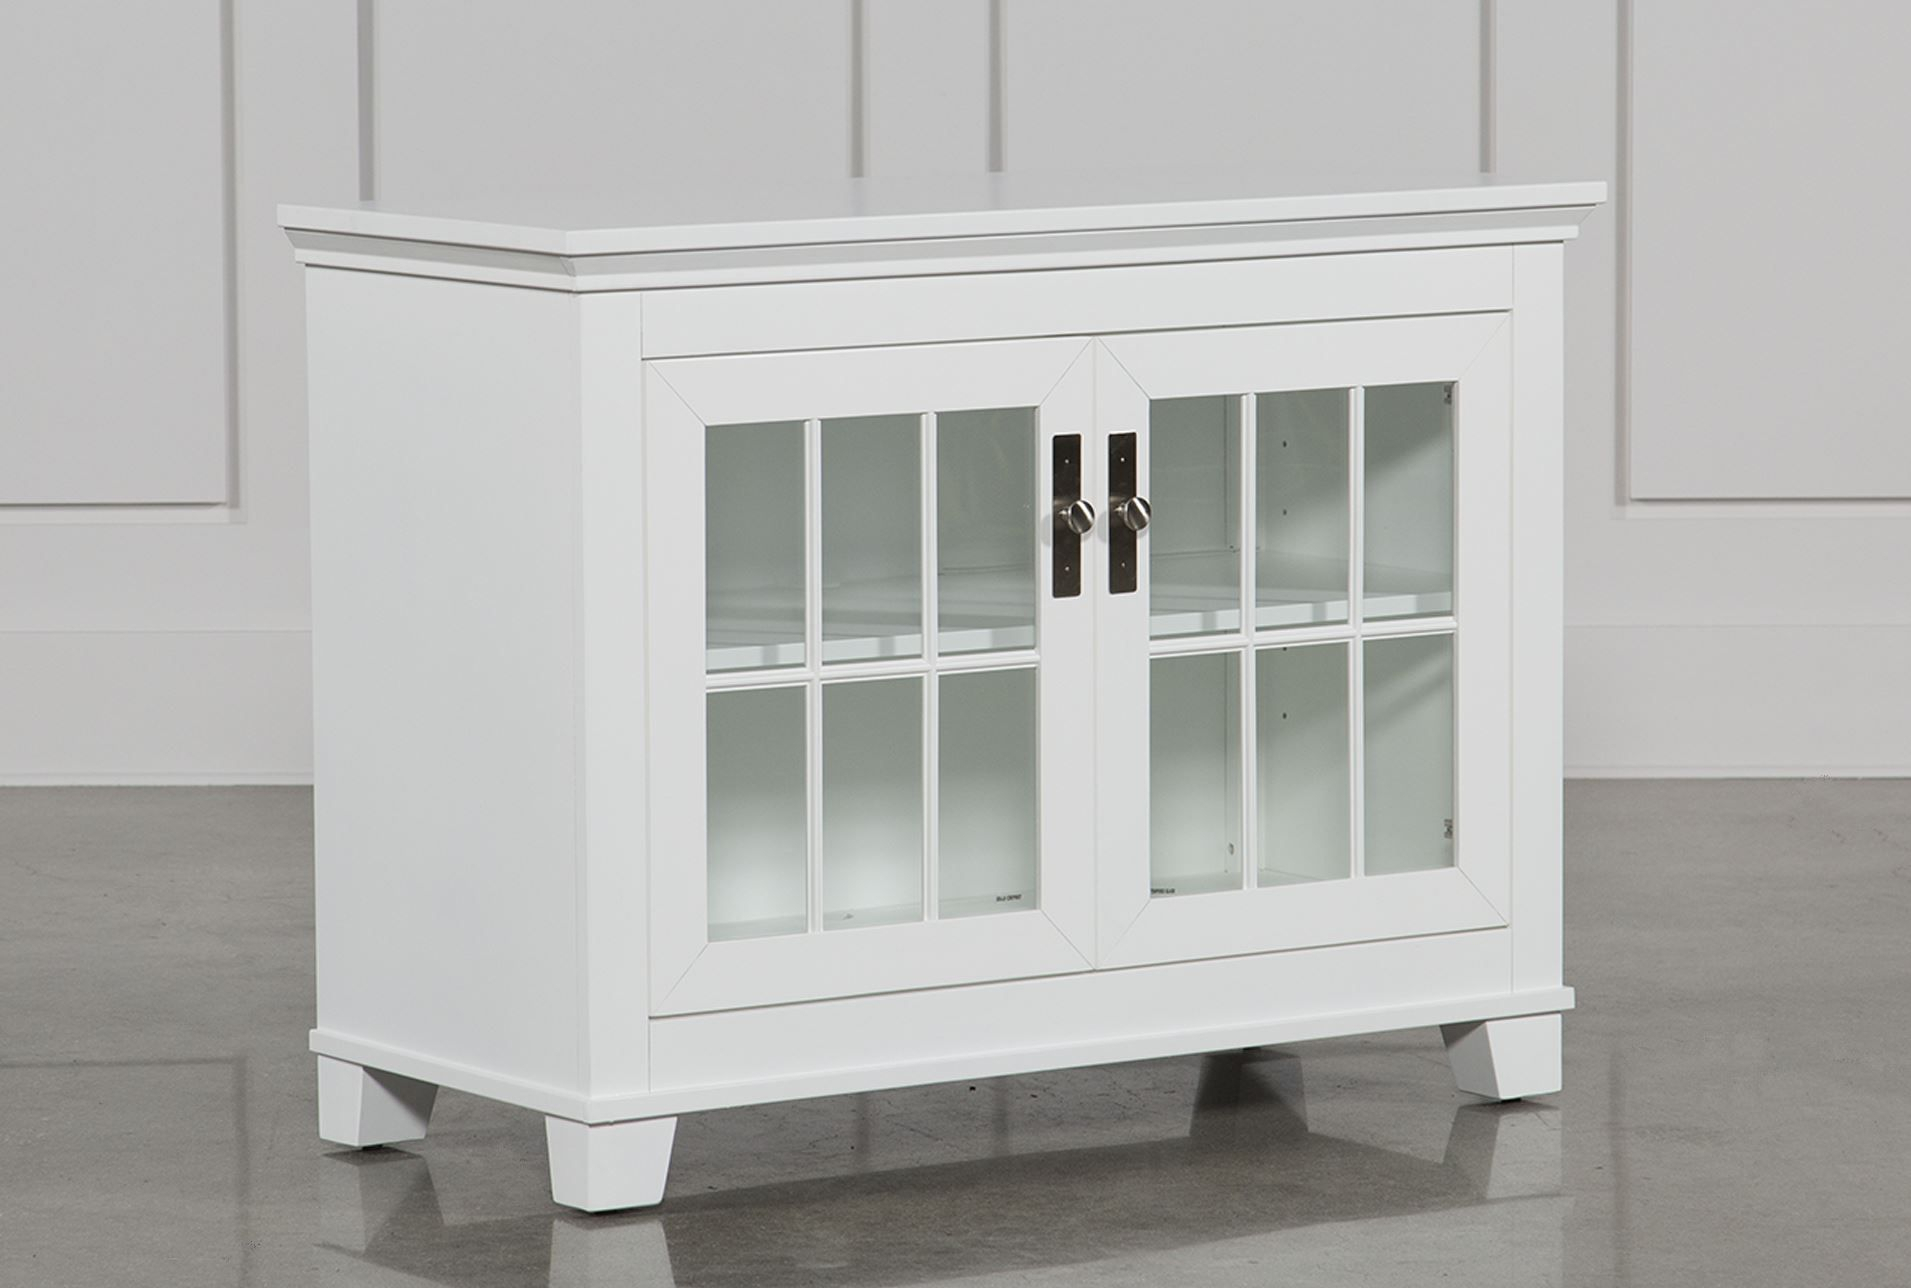 295 Living Hamden White 43 Inch Tv Console | Playroom | Pinterest intended for Sinclair Grey 54 Inch Tv Stands (Image 1 of 30)